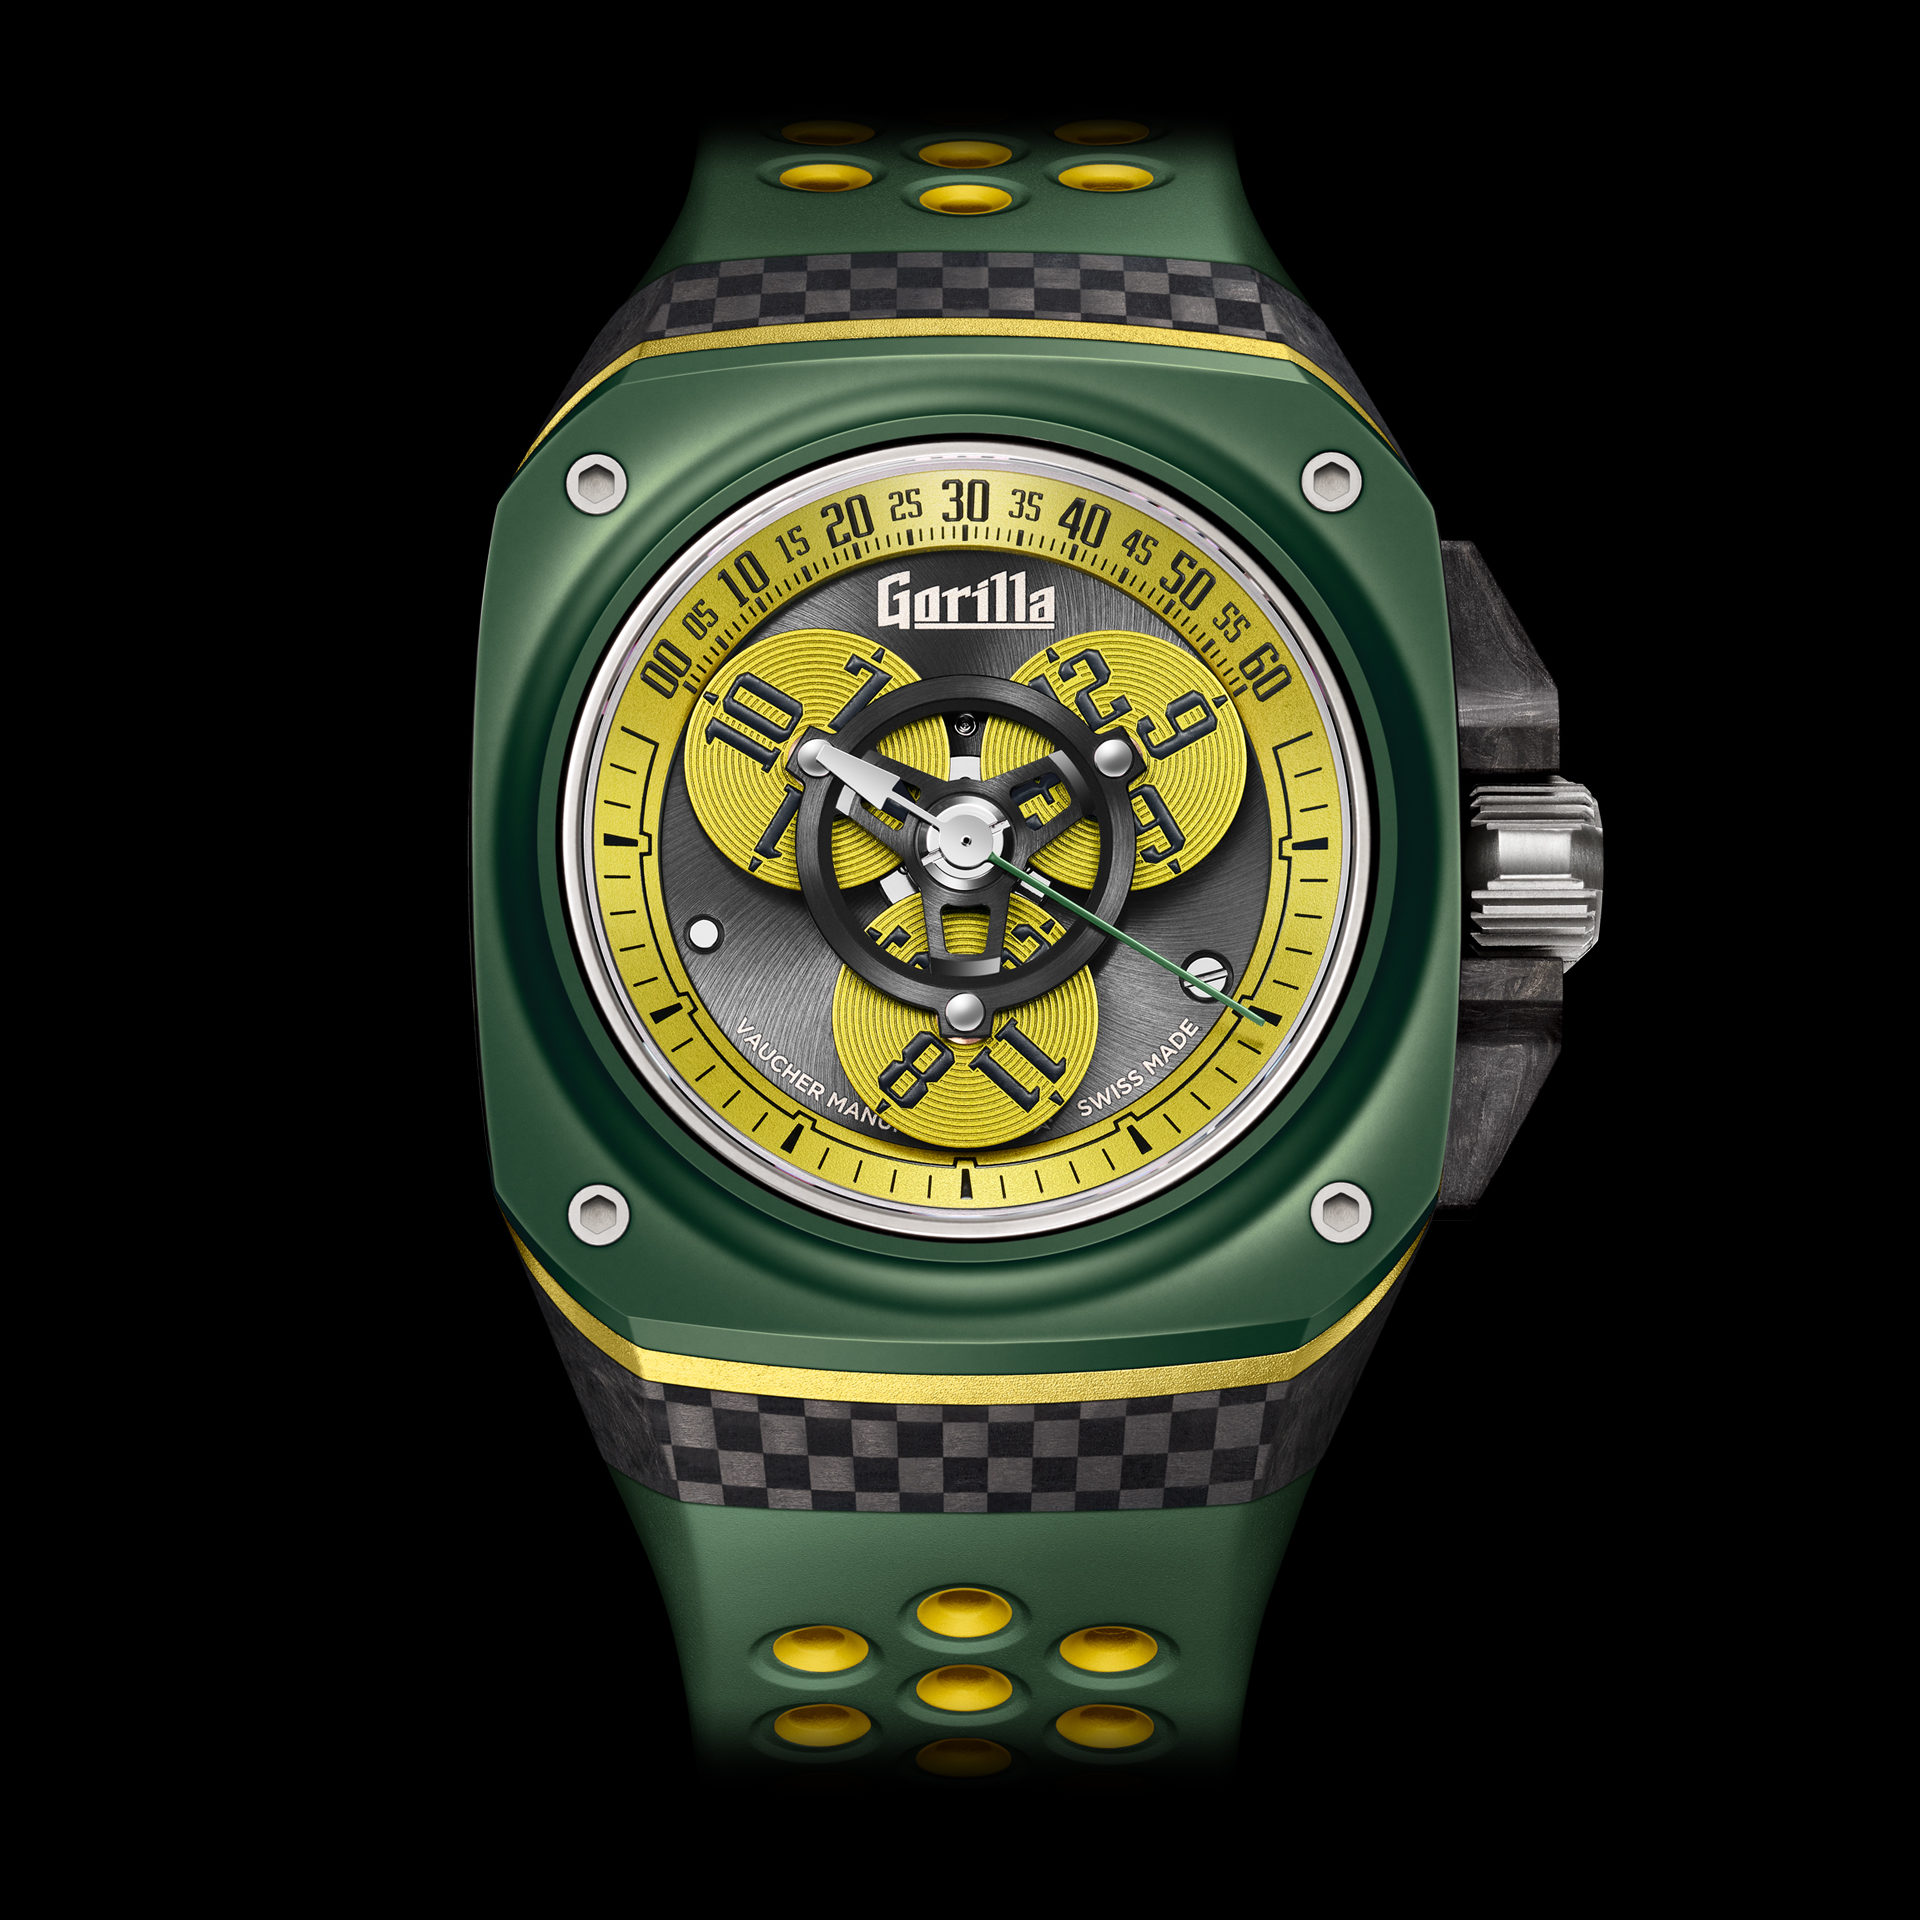 precio competitivo 42238 23dc8 Shop - Welcome to the Official Gorilla Watches Online Store